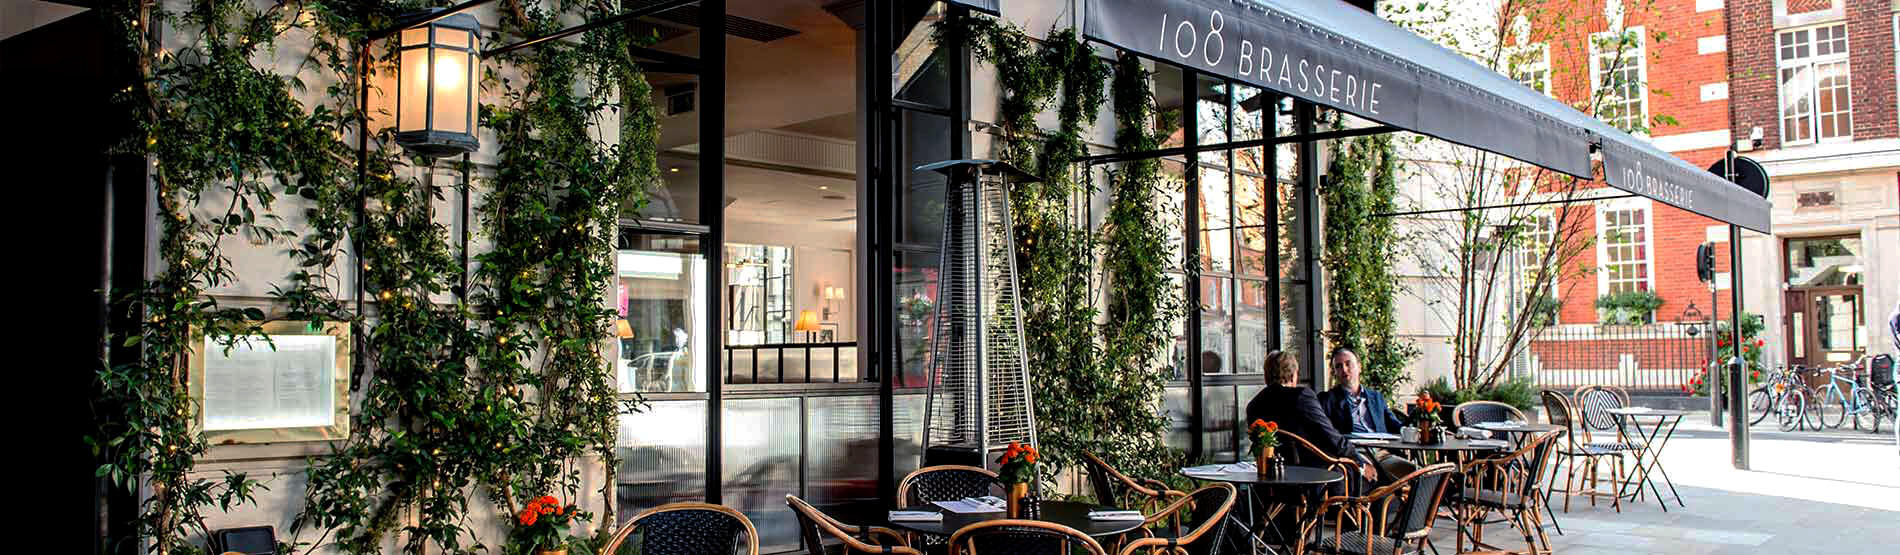 108 brasserie in central london the marylebone hotel 1 2 3 sisterspd